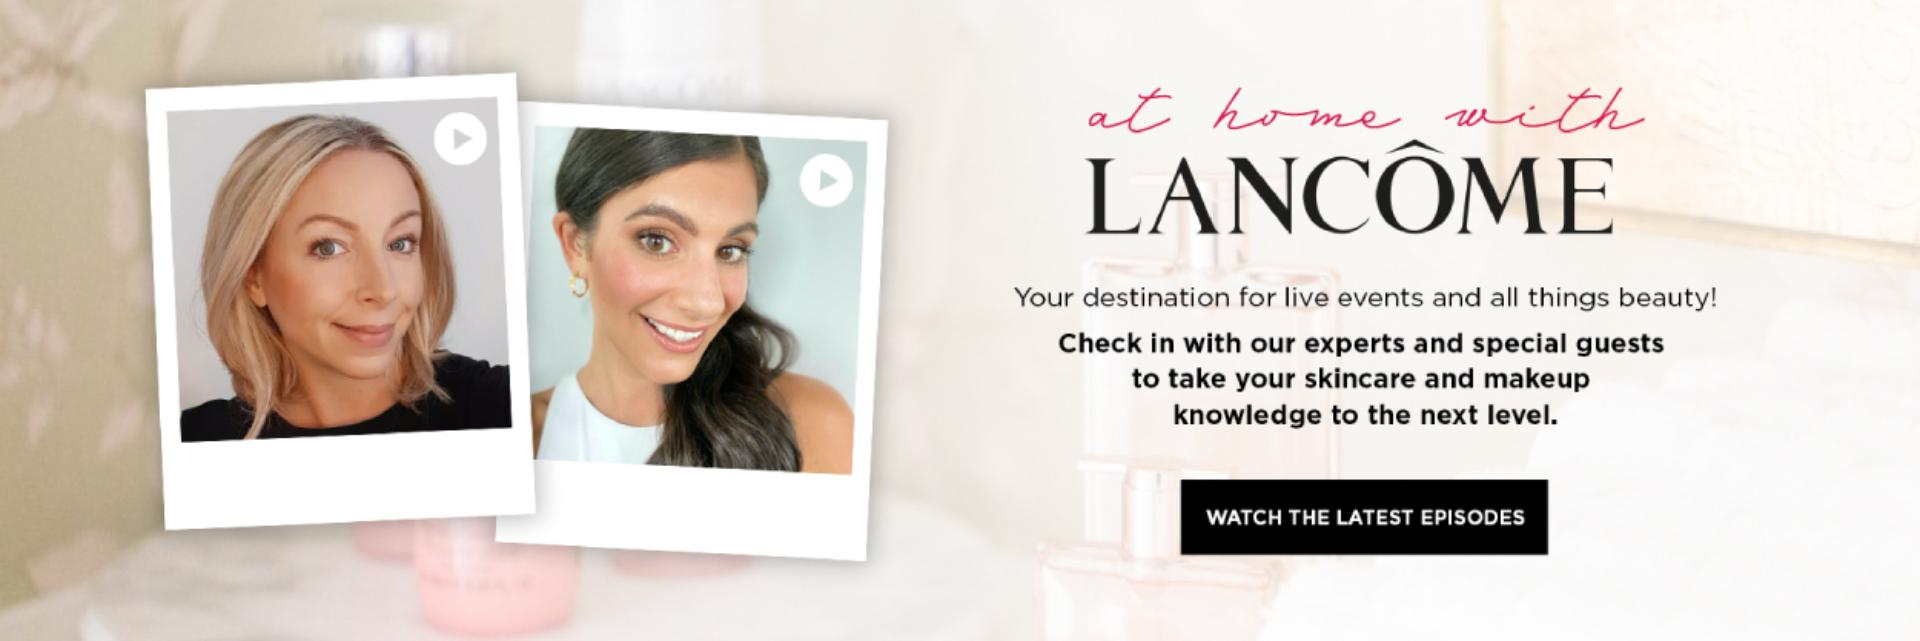 At Home With Lancome Banner